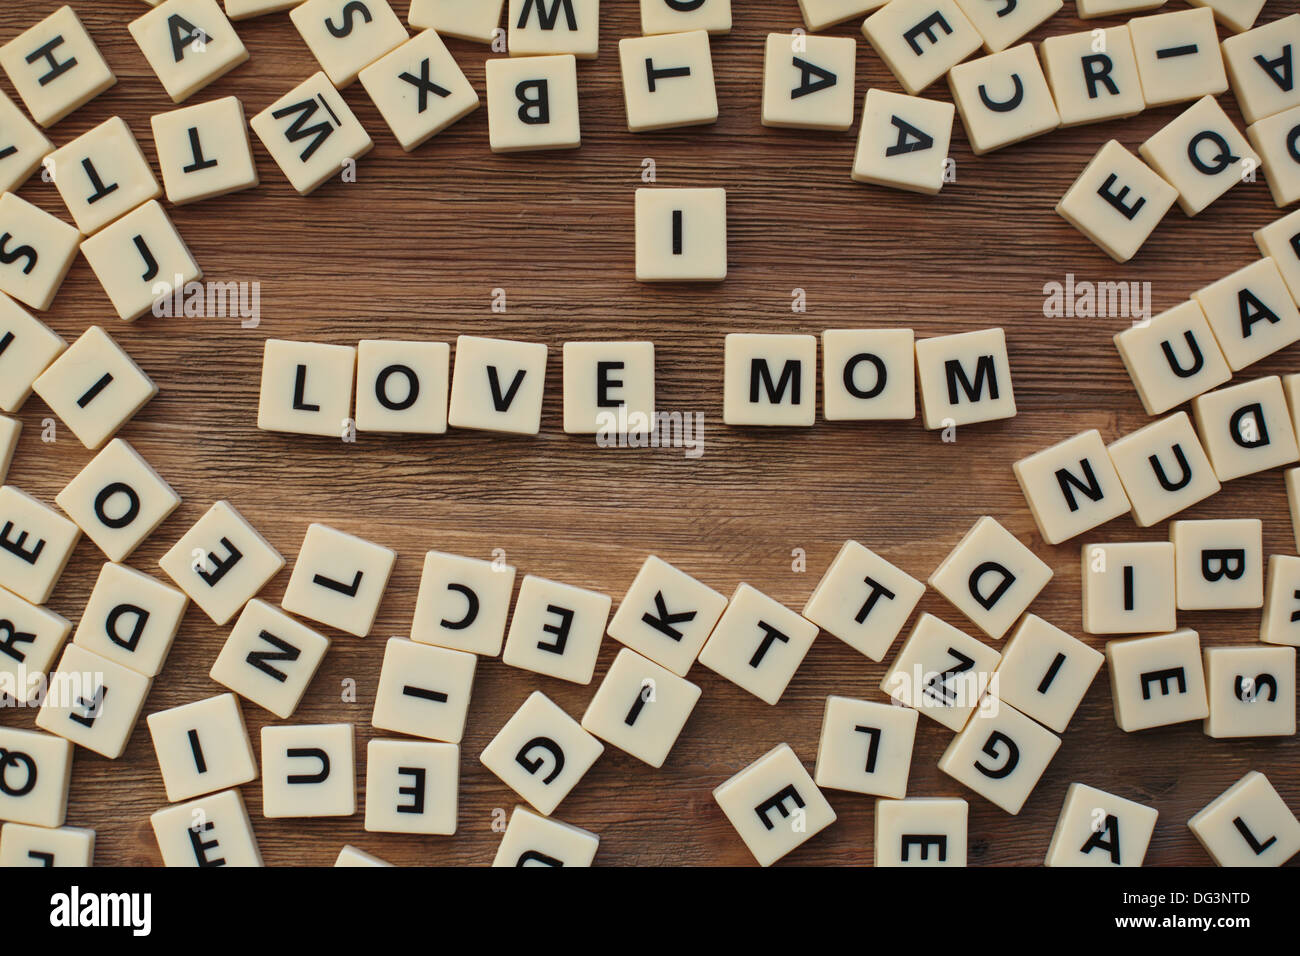 Plastic letters from a childrens' spelling game on a wooden table spell 'I Love Mom' - Stock Image